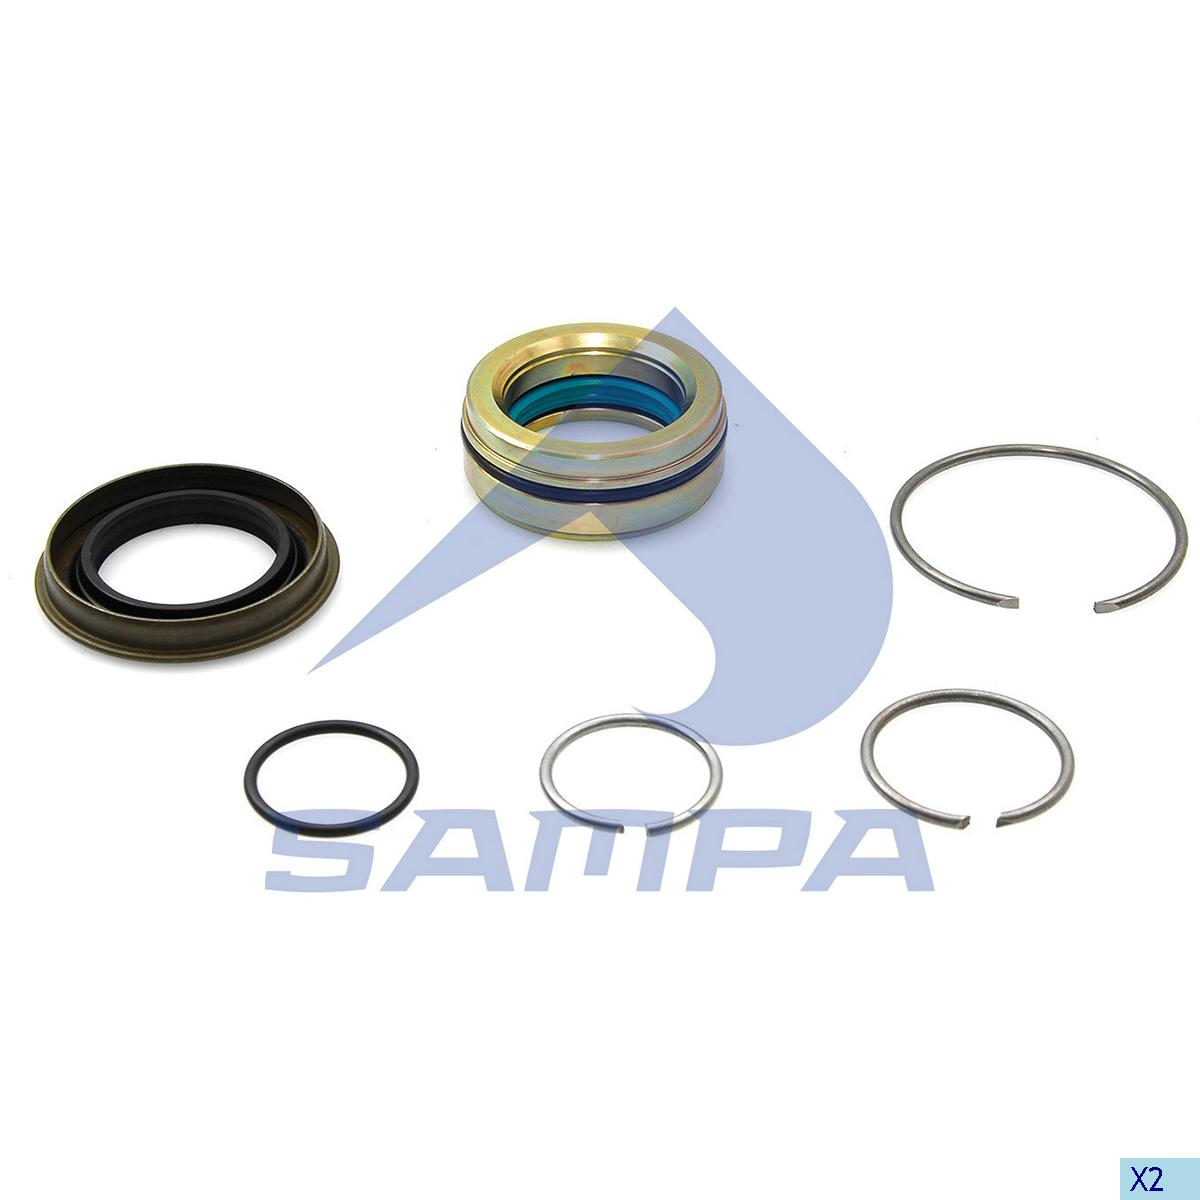 Repair Kit, Cab Tilt, Iveco, Cab